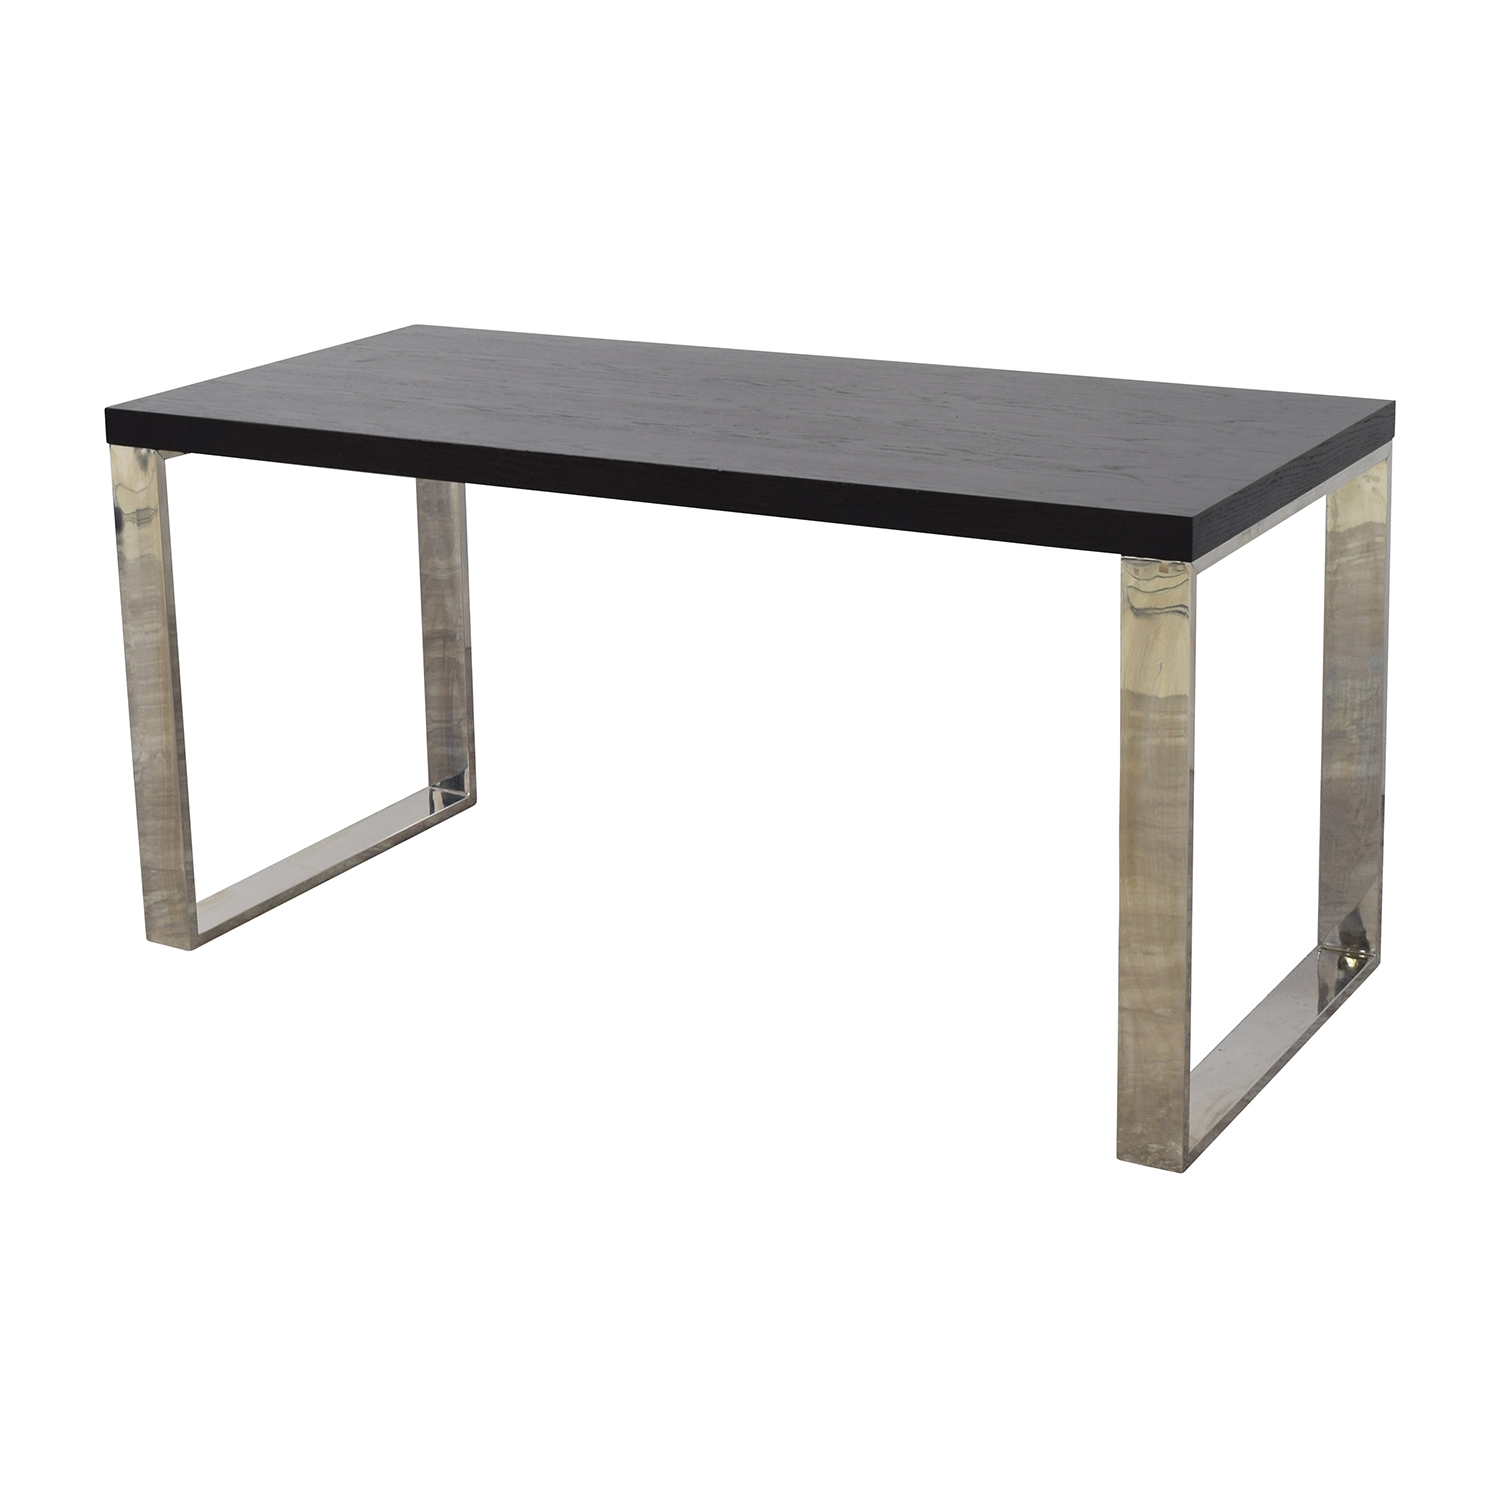 71 off macy 39 s macy 39 s stockholm wood and metal home office desk tables - Metal office desk ...